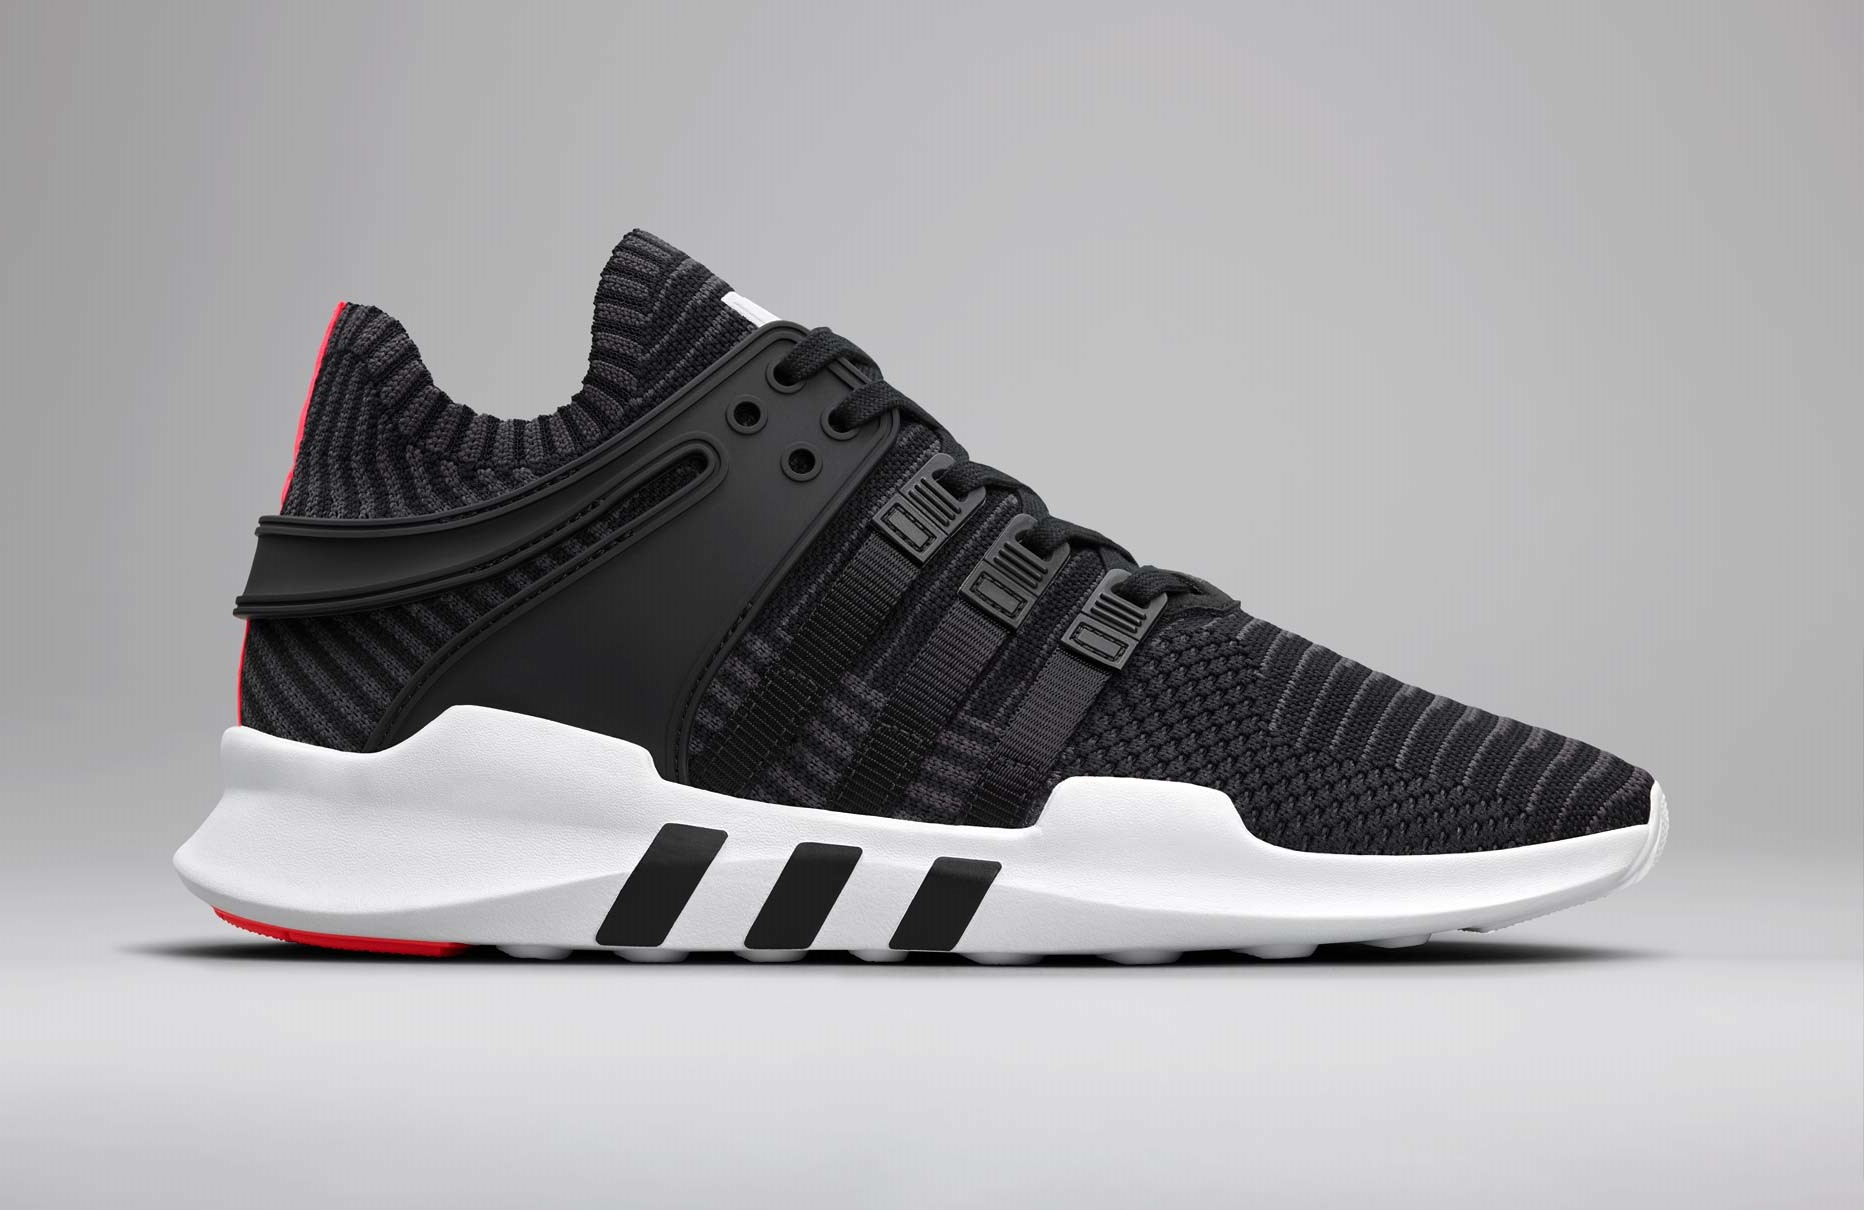 Eqt Masses The Collection Launches In Malaysia Adidas Officially roeWxQCBd